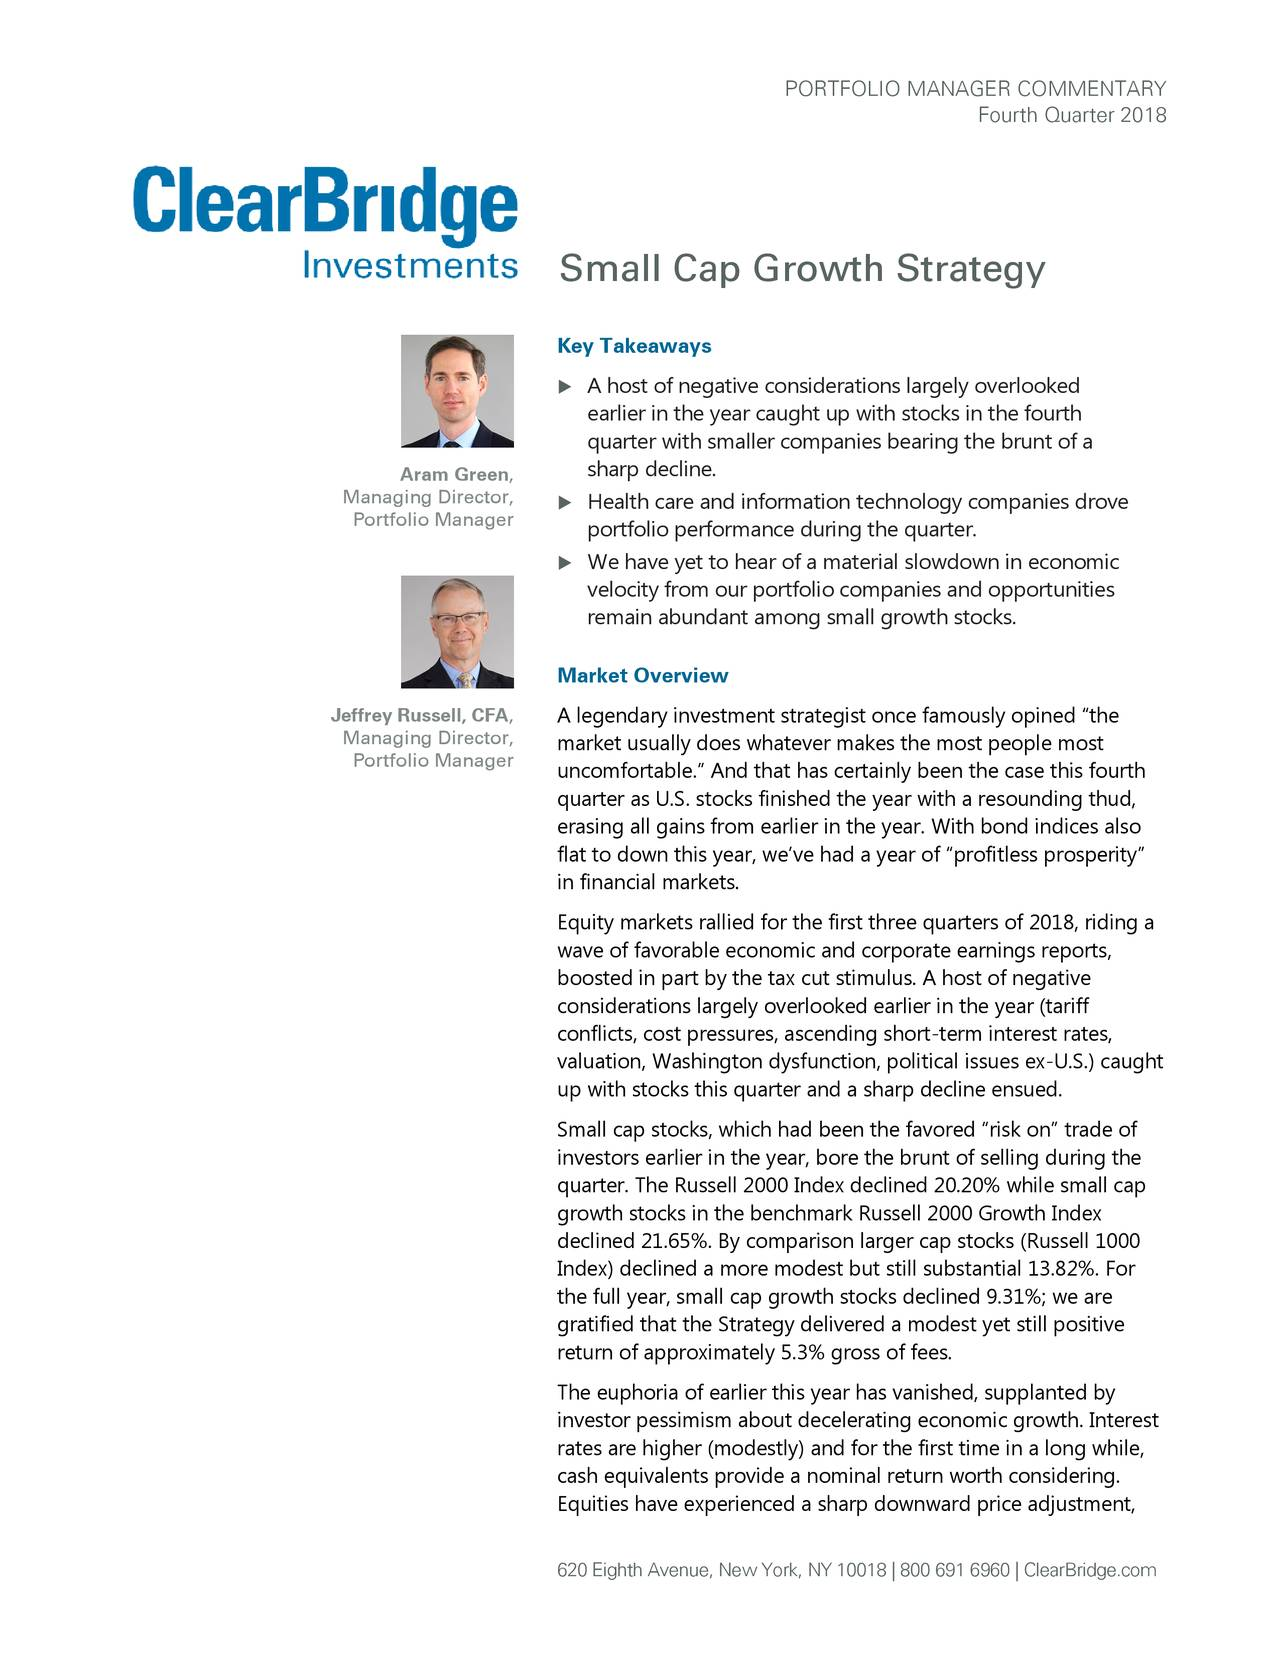 """Fourth Quarter 2018 Small Cap Growth Strategy Key Takeaways  A host of negative considerations largely overlooked earlier in the year caught up with stocks in the fourth quarter with smaller companies bearing the brunt of a Aram Green, sharp decline. Managing Director,  Health care and information technology companies drove Portfolio Manager portfolio performance during the quarter.  We have yet to hear of a material slowdown in economic velocity from our portfolio companies and opportunities remain abundant among small growth stoc ks. Market Overview Jeffrey Russell, CFA, A legendary investment strategist once famously opined """"the Managing Director, market usually does whatever makes the most people most Portfolio Manager uncomfortable."""" And that has certainly been the case this fourth quarter as U.S. stocks finished the year with a resounding thud, erasing all gains from earlier in the year. With bond indices also flat to down this year, we've had a year of """"profitless prosperity"""" in financial markets. Equity markets rallied for the first three quarters of 2018, riding a wave of favorable economic and corporate earnings reports, boosted in part by the tax cut stimulus. A host of negative considerations largely overlooked earlier in the year (tariff conflicts, cost pressures, ascending short-term interest rates, valuation, Washington dysfunction, political issues ex-U.S.) caught up with stocks this quarter and a sharp decline ensued. Small cap stocks, which had been the favored """"risk on"""" trade of investors earlier in the year, bore the brunt of selling during the quarter. The Russell 2000 Index declined 20.20% while small cap growth stocks in the benchmark Russell 2000 Growth Index declined 21.65%. By comparison larger cap stocks (Russell 1000 Index) declined a more modest but still substantial 13.82%. For the full year, small cap growth stocks declined 9.31%; we are gratified that the Strategy delivered a modest yet still positive return of approximately 5.3% gros"""